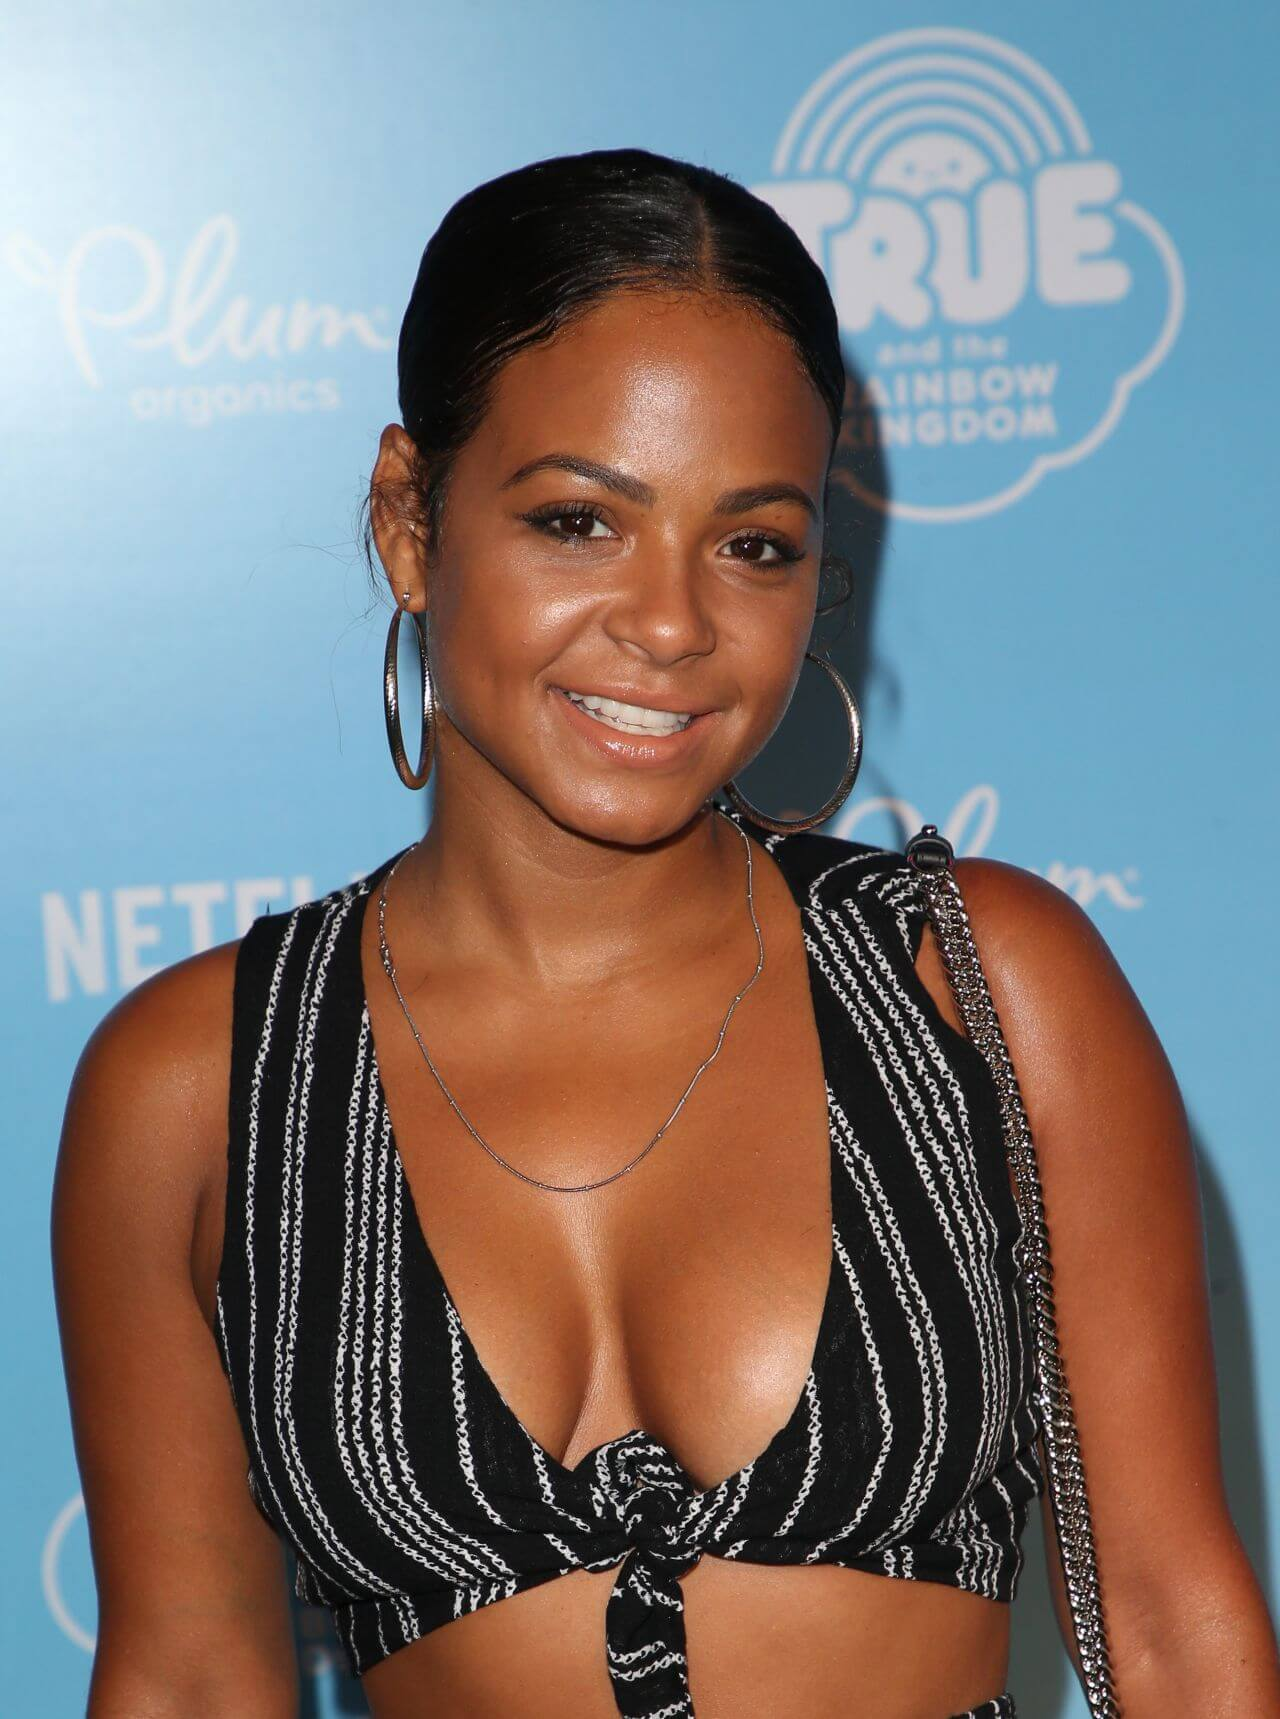 CHRISTINA MILIAN cleavage photos